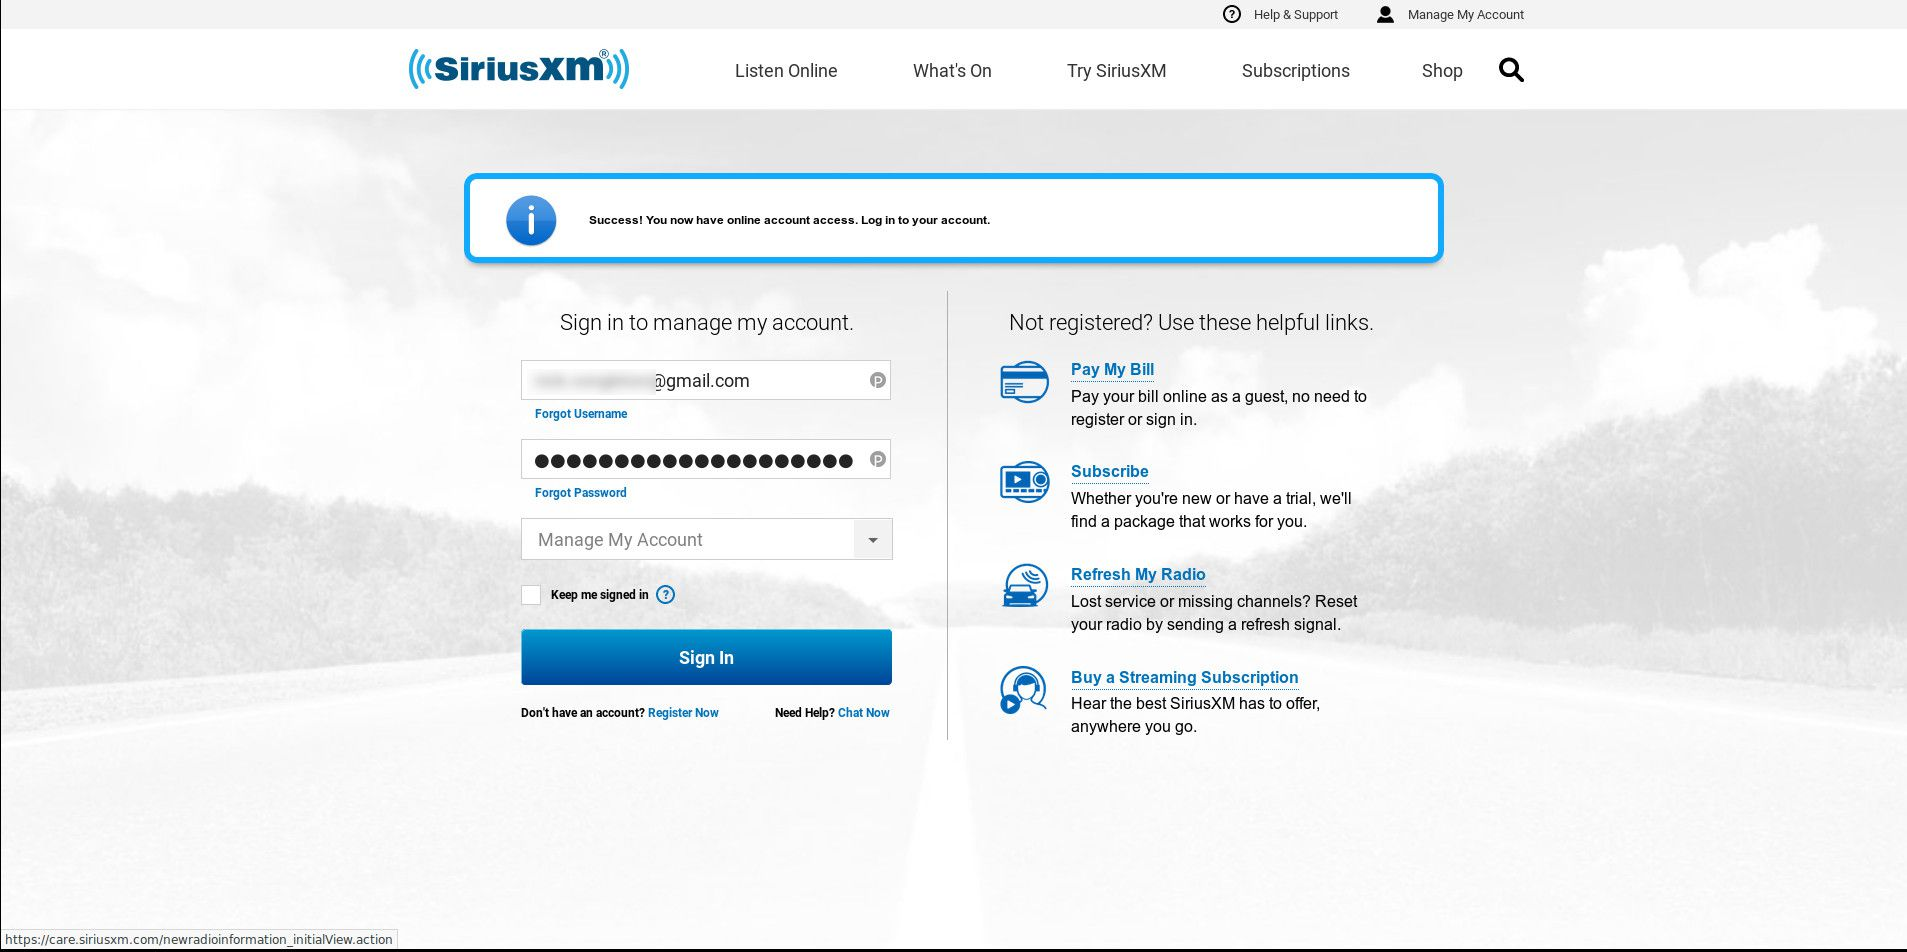 Sign-in page for SiriusXM accounts.